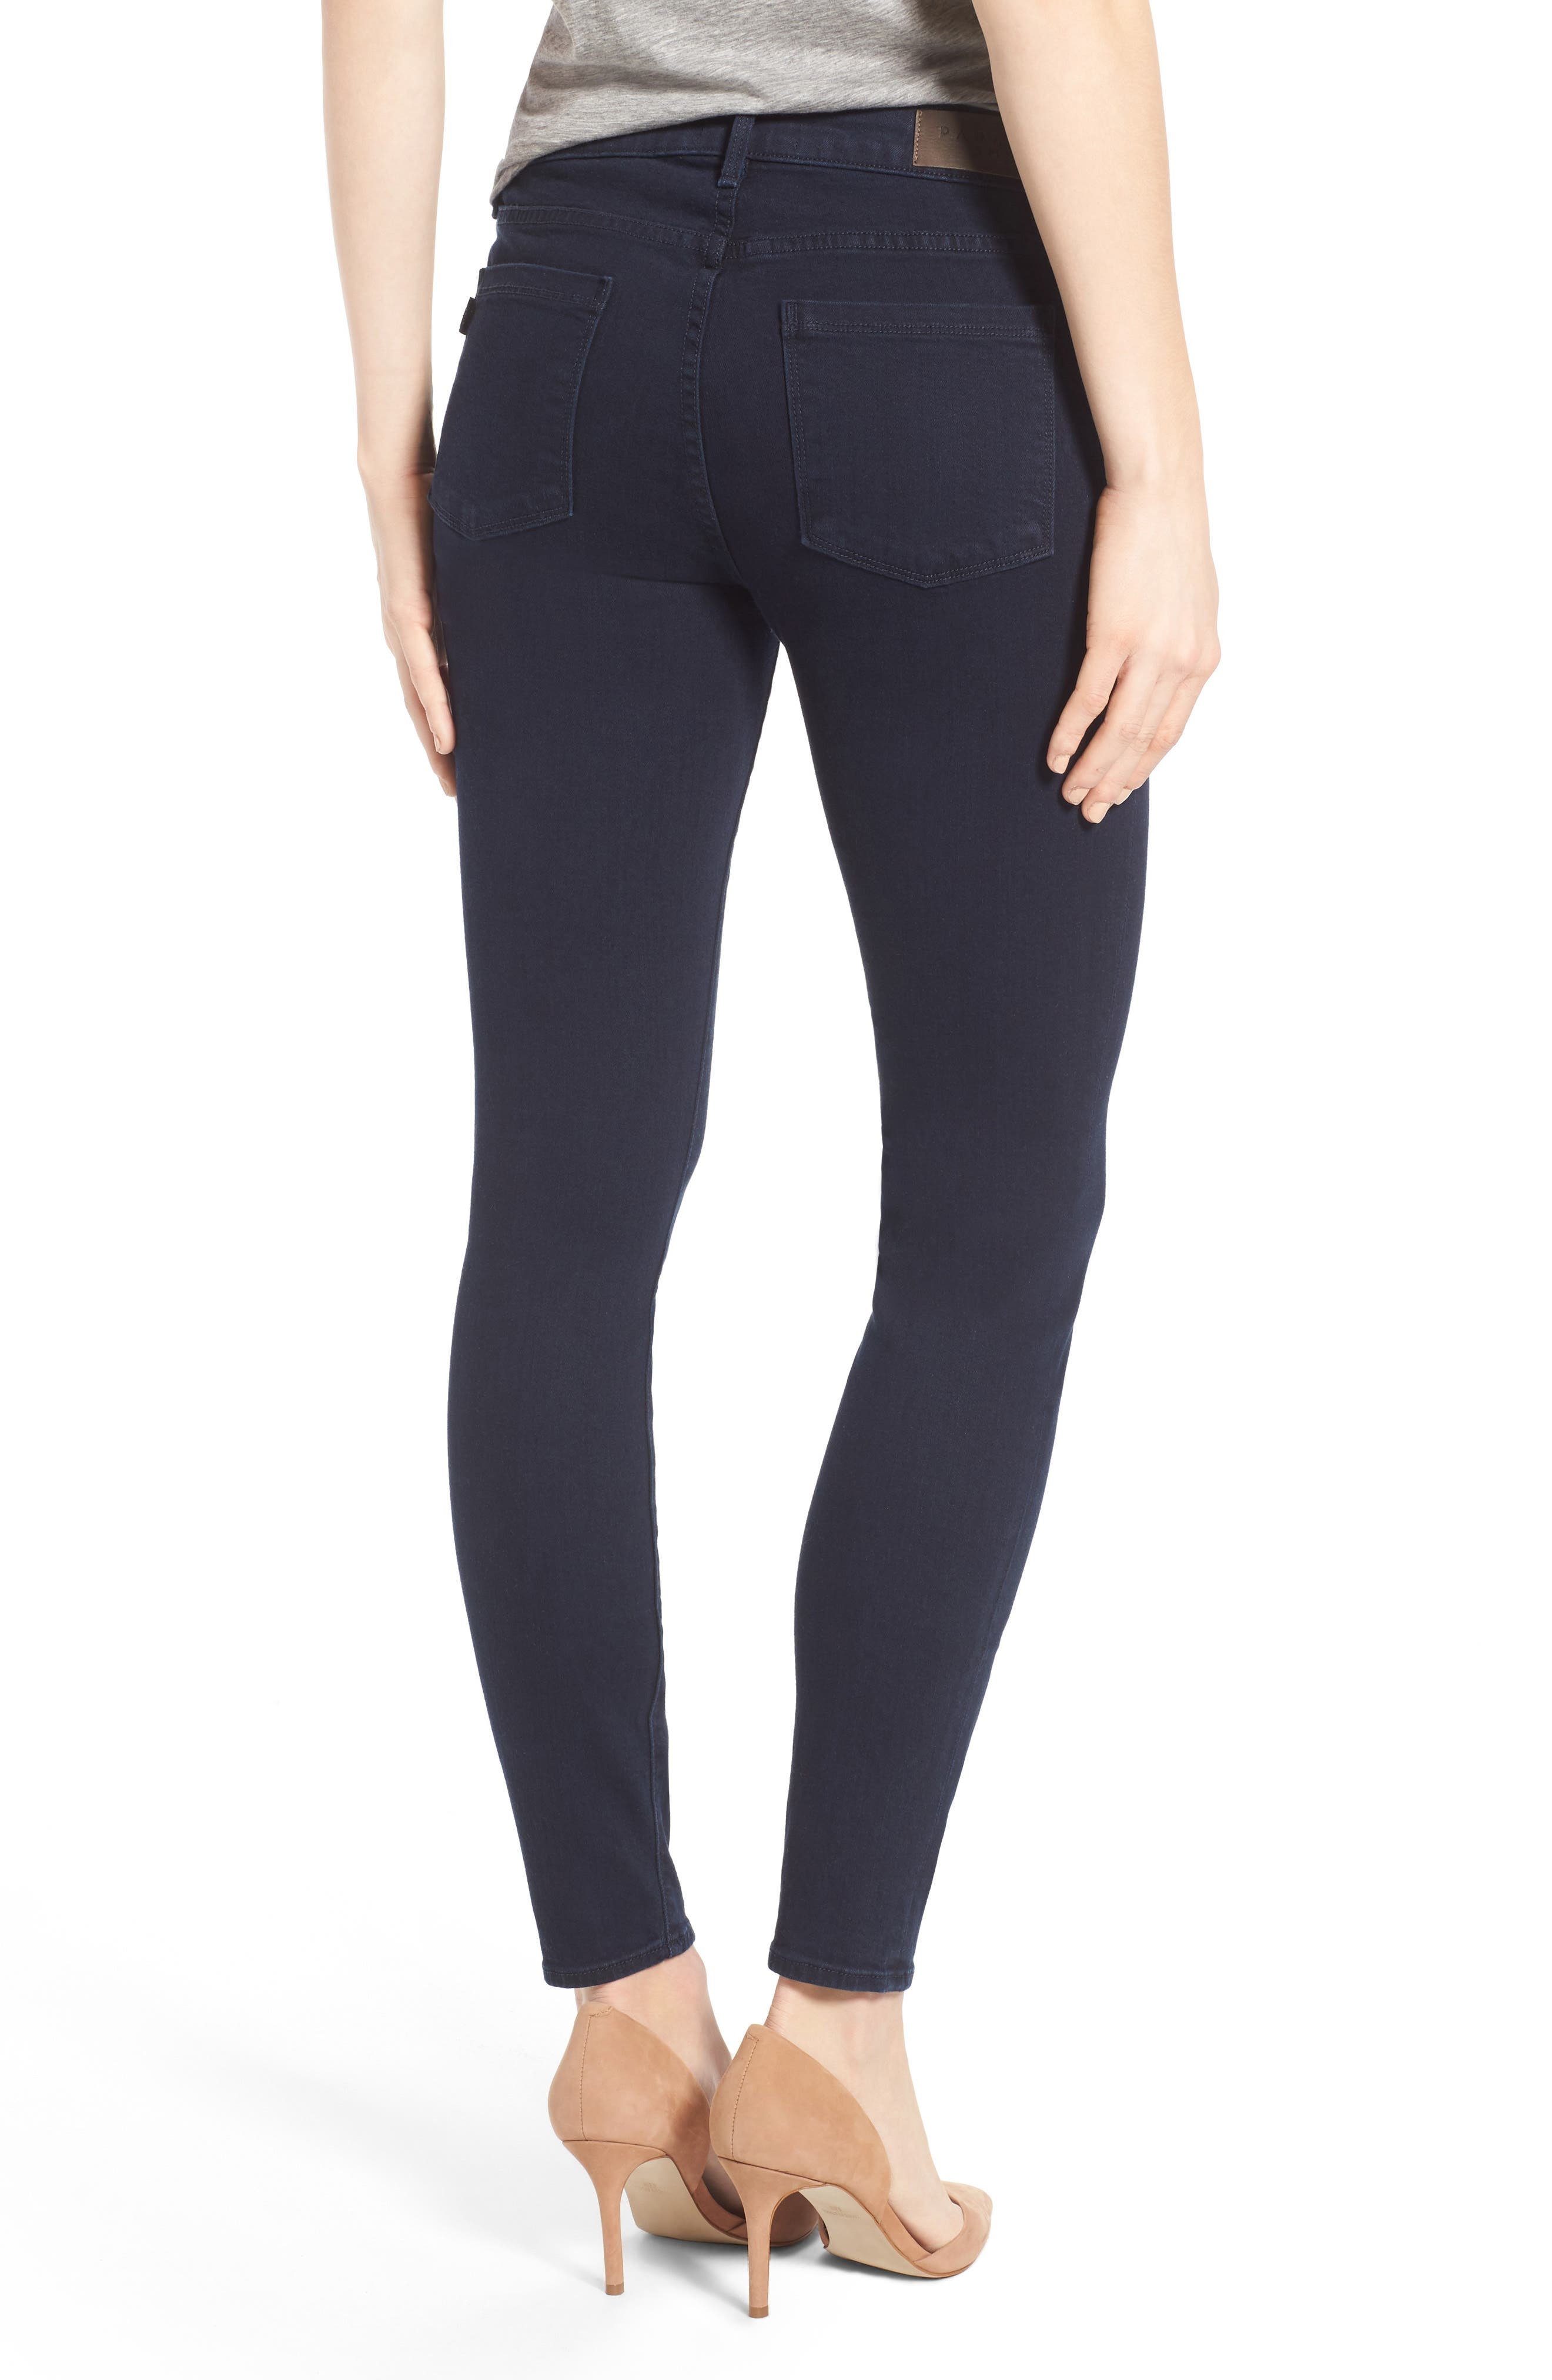 PARKER SMITH,                             Ava Stretch Skinny Jeans,                             Alternate thumbnail 2, color,                             419